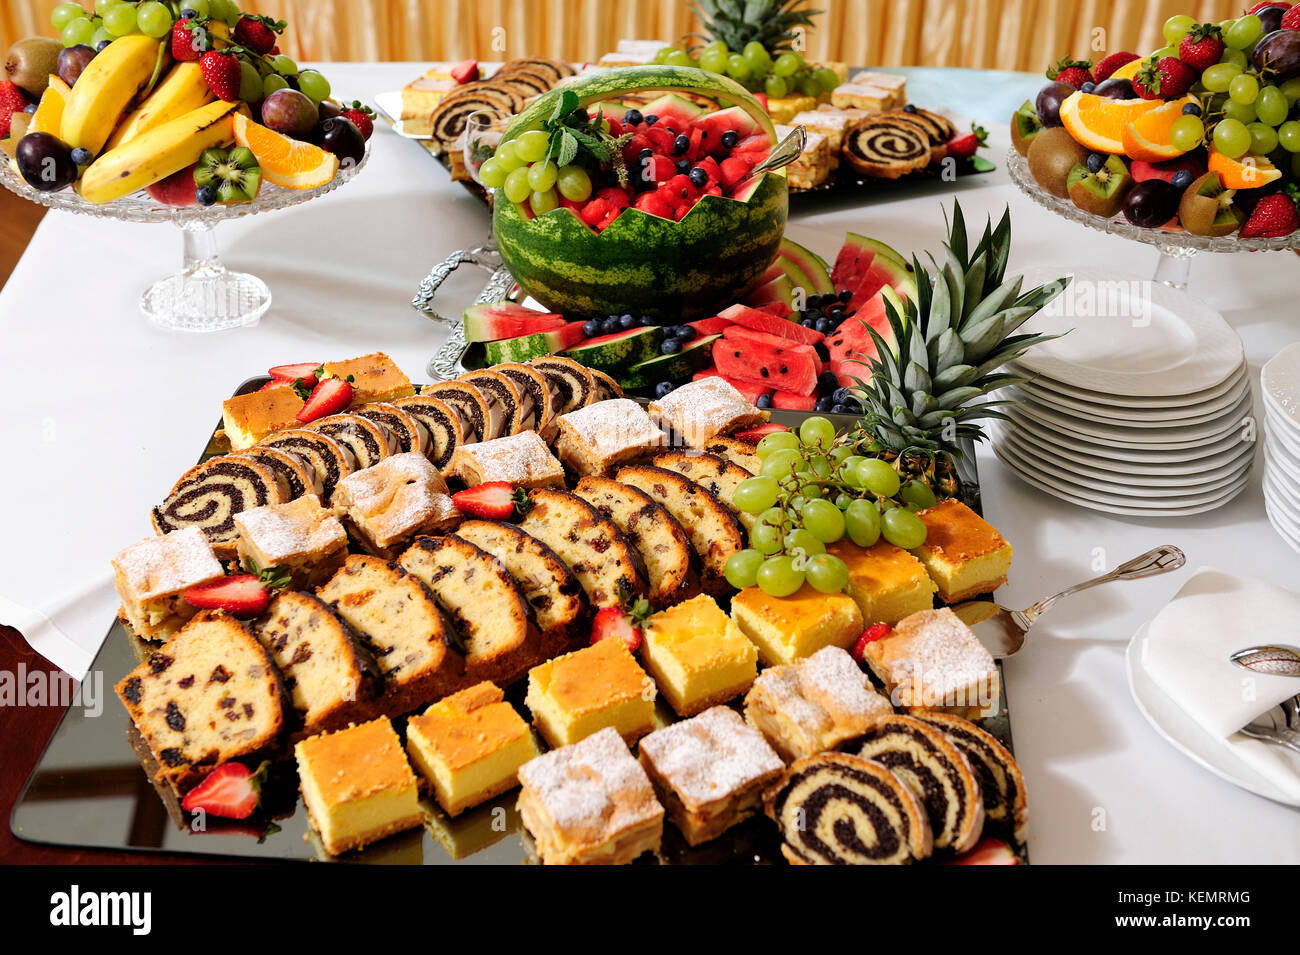 catering, food, cooked, fine art, concept, service, food-lovers, nuances, - Stock Image